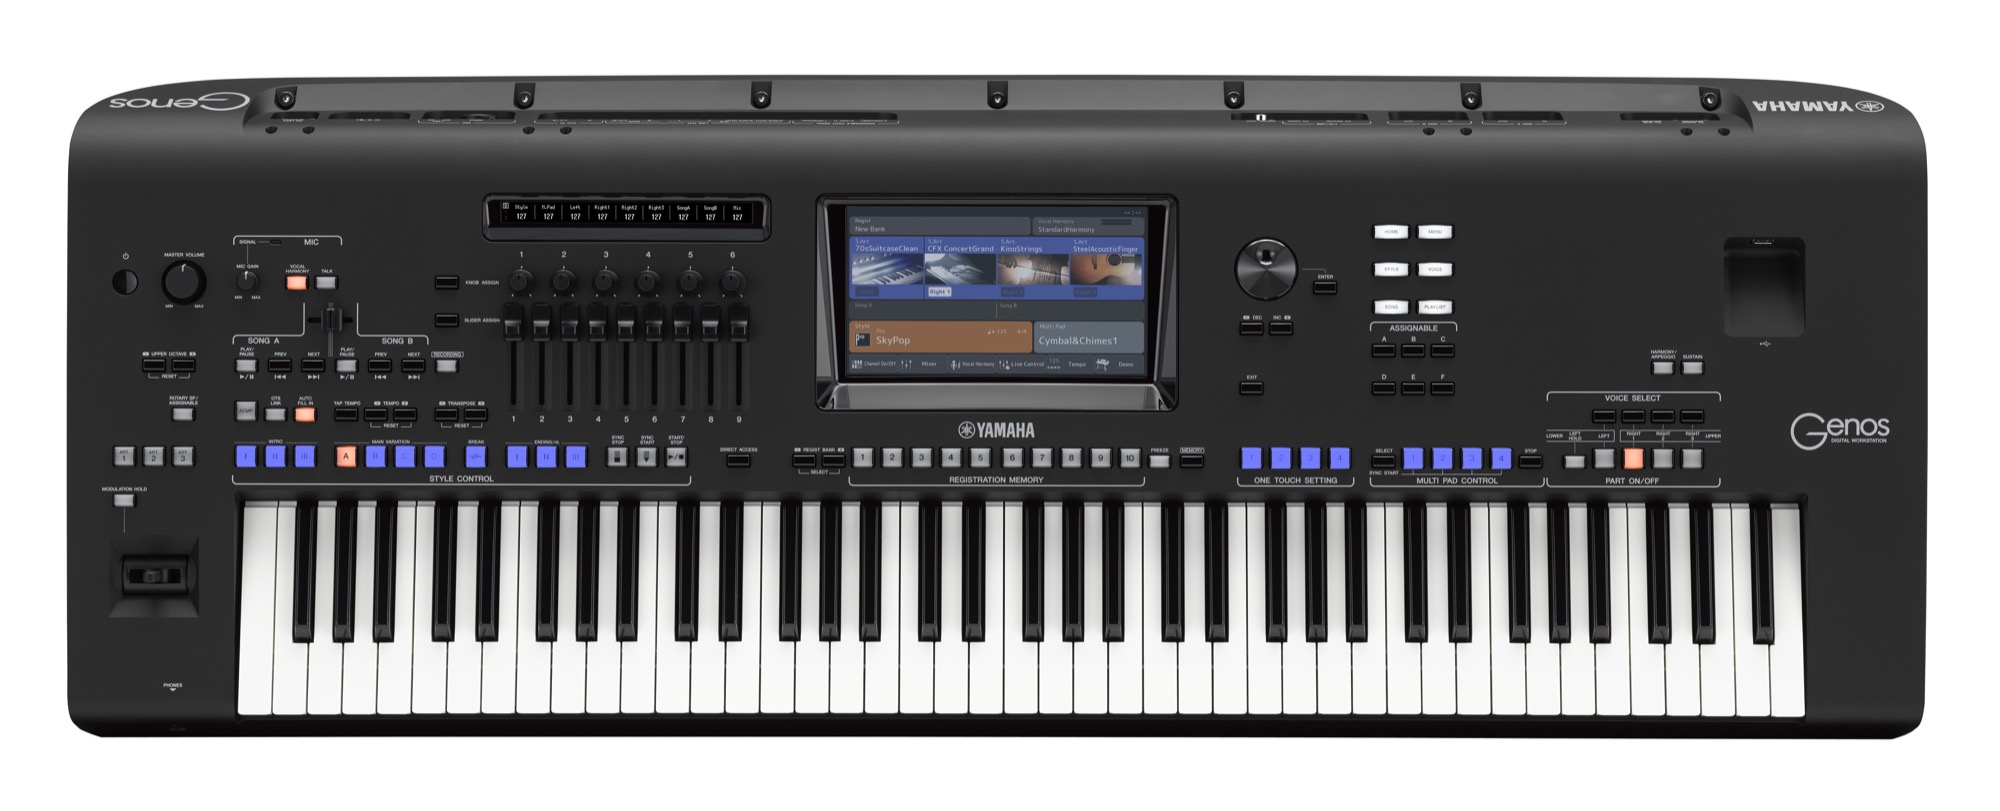 Yamaha Genos Workstation Ultimate Pack Including Official